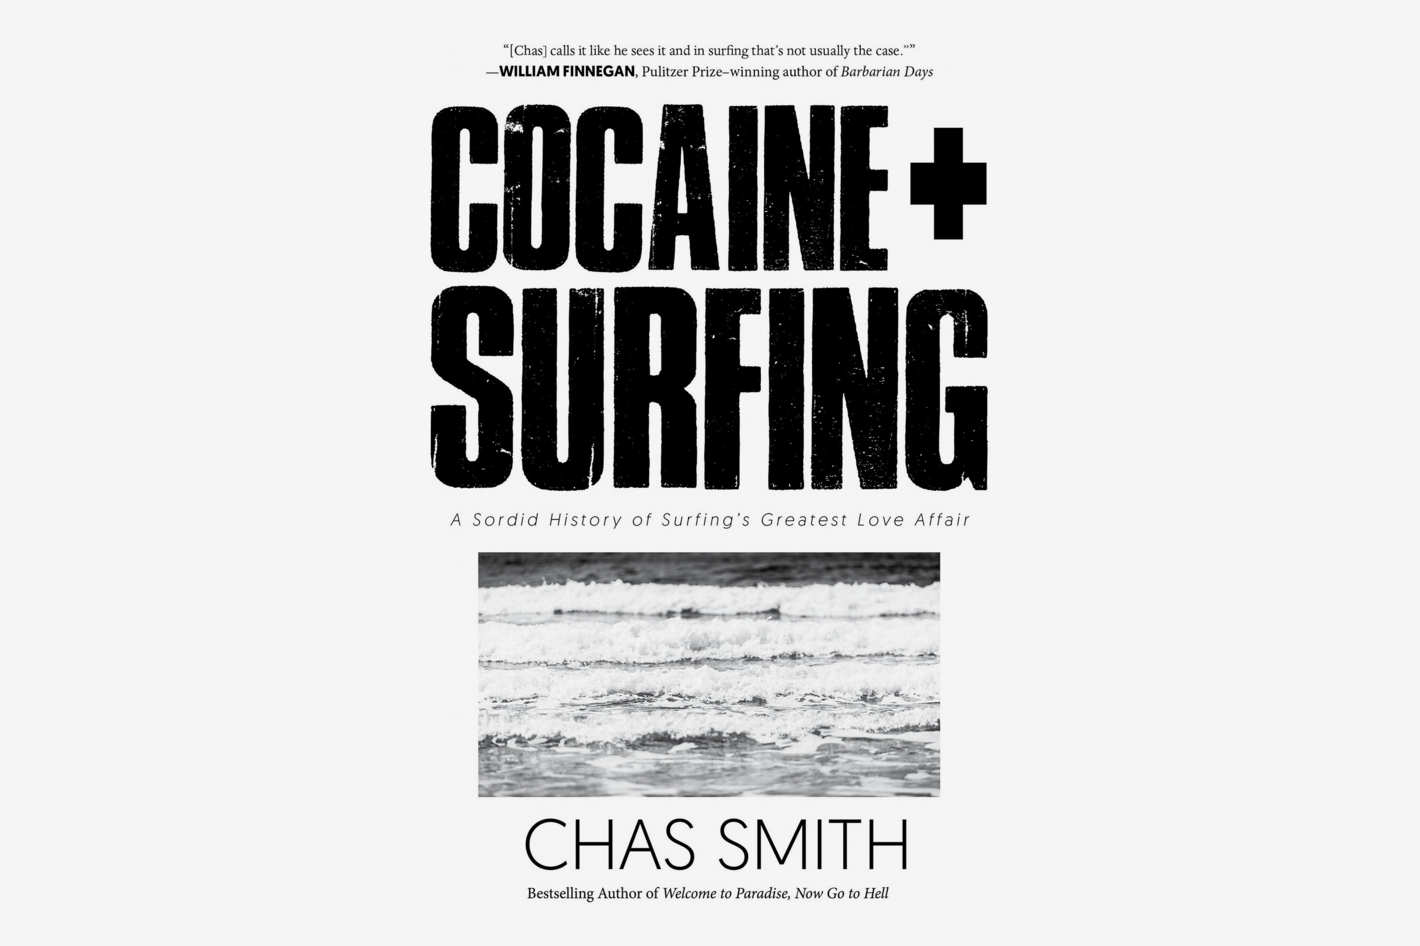 <em>Cocaine + Surfing: A Sordid History of Surfing's Greatest Love Affair</em>, by Chas Smith